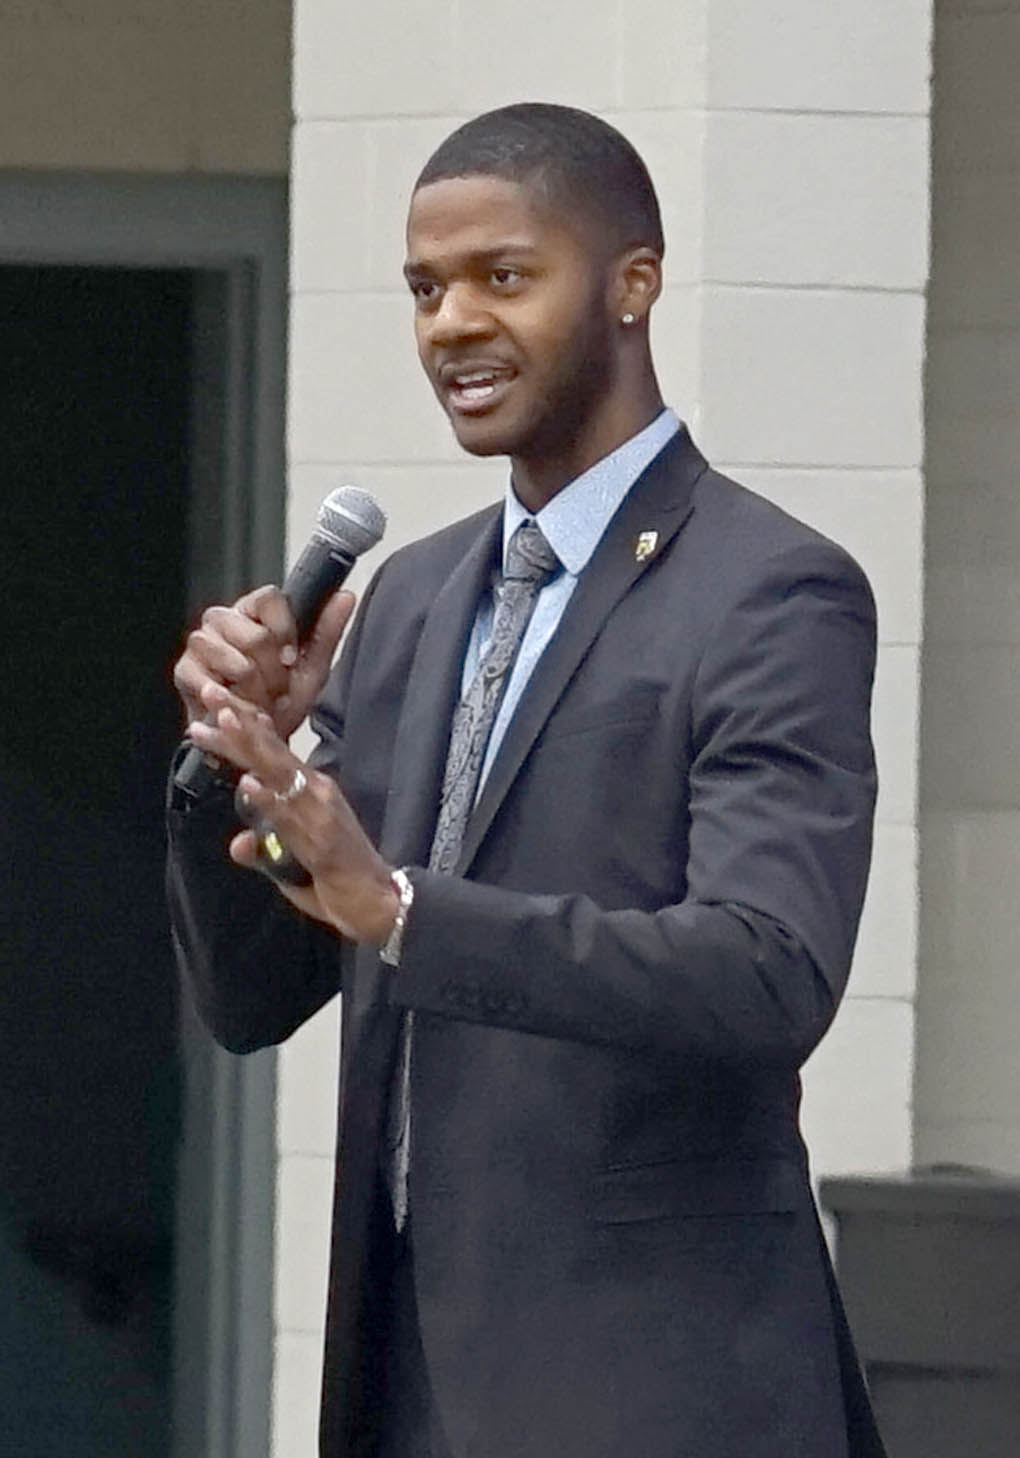 Click to enlarge,  Motivational speaker Donovan Livingston spoke at the annual NC TRiO Student Initiatives Conference on March 2 at the Dennis A. Wicker Civic & Conference Center in Sanford.